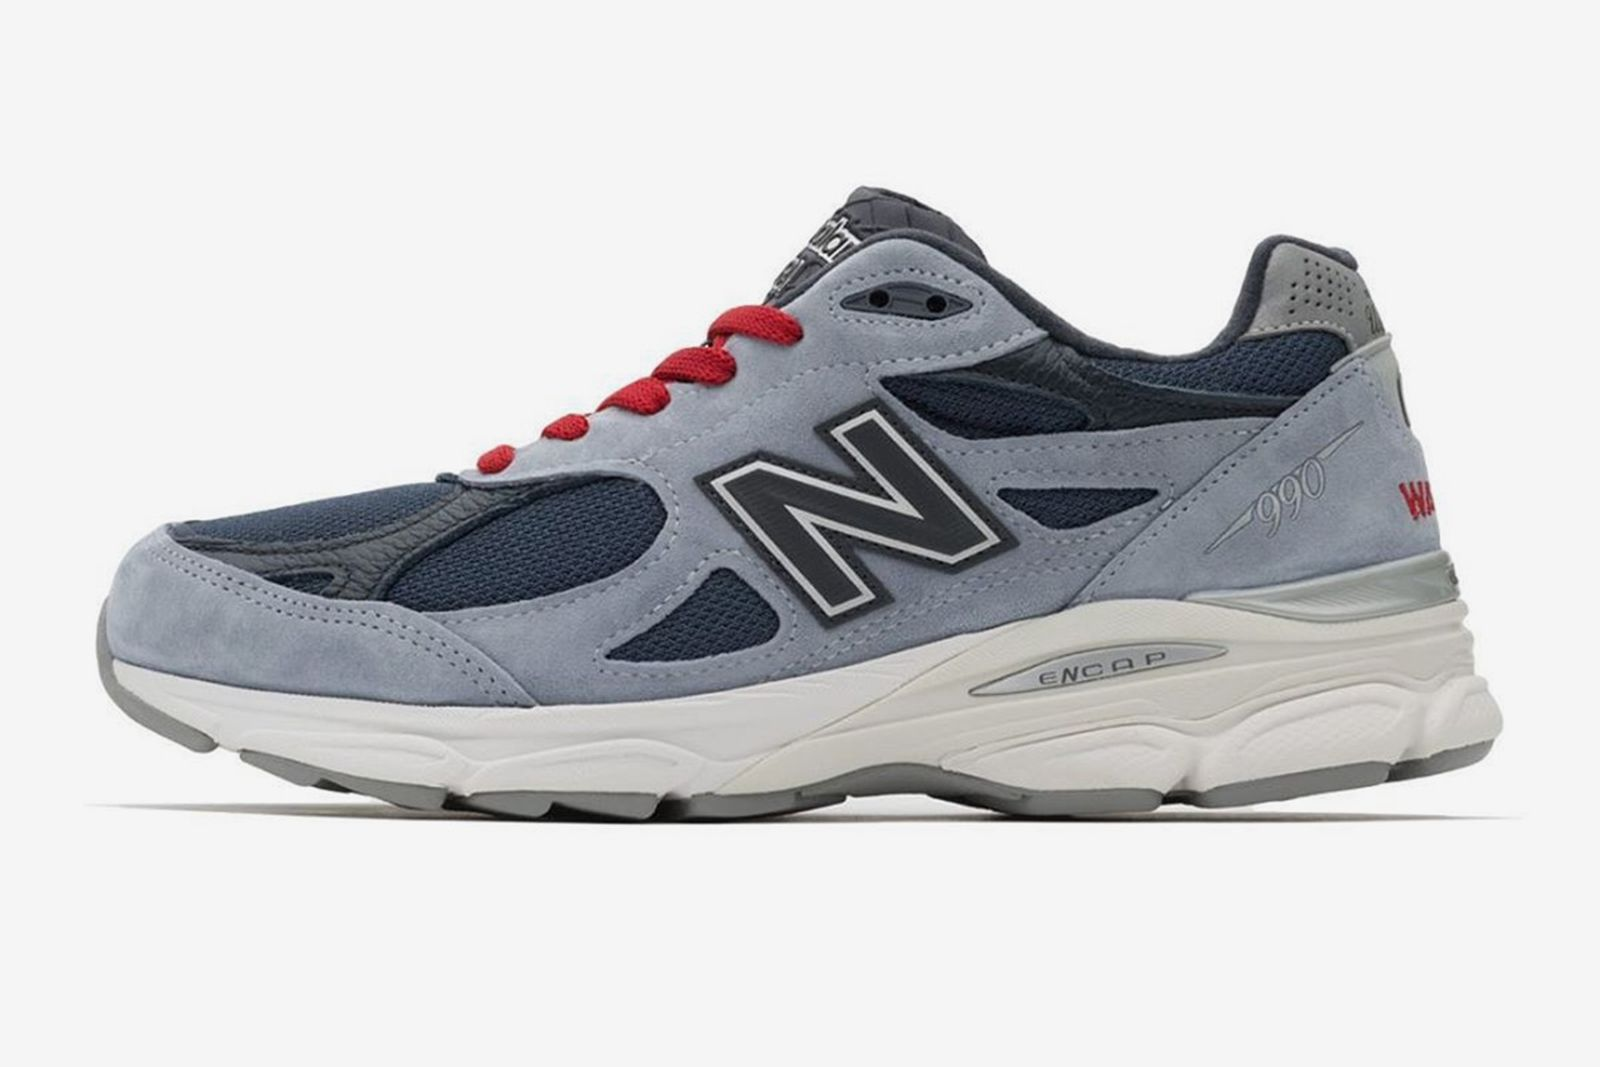 no vacancy inn new balance 990v3 release date price Tremaine Emory